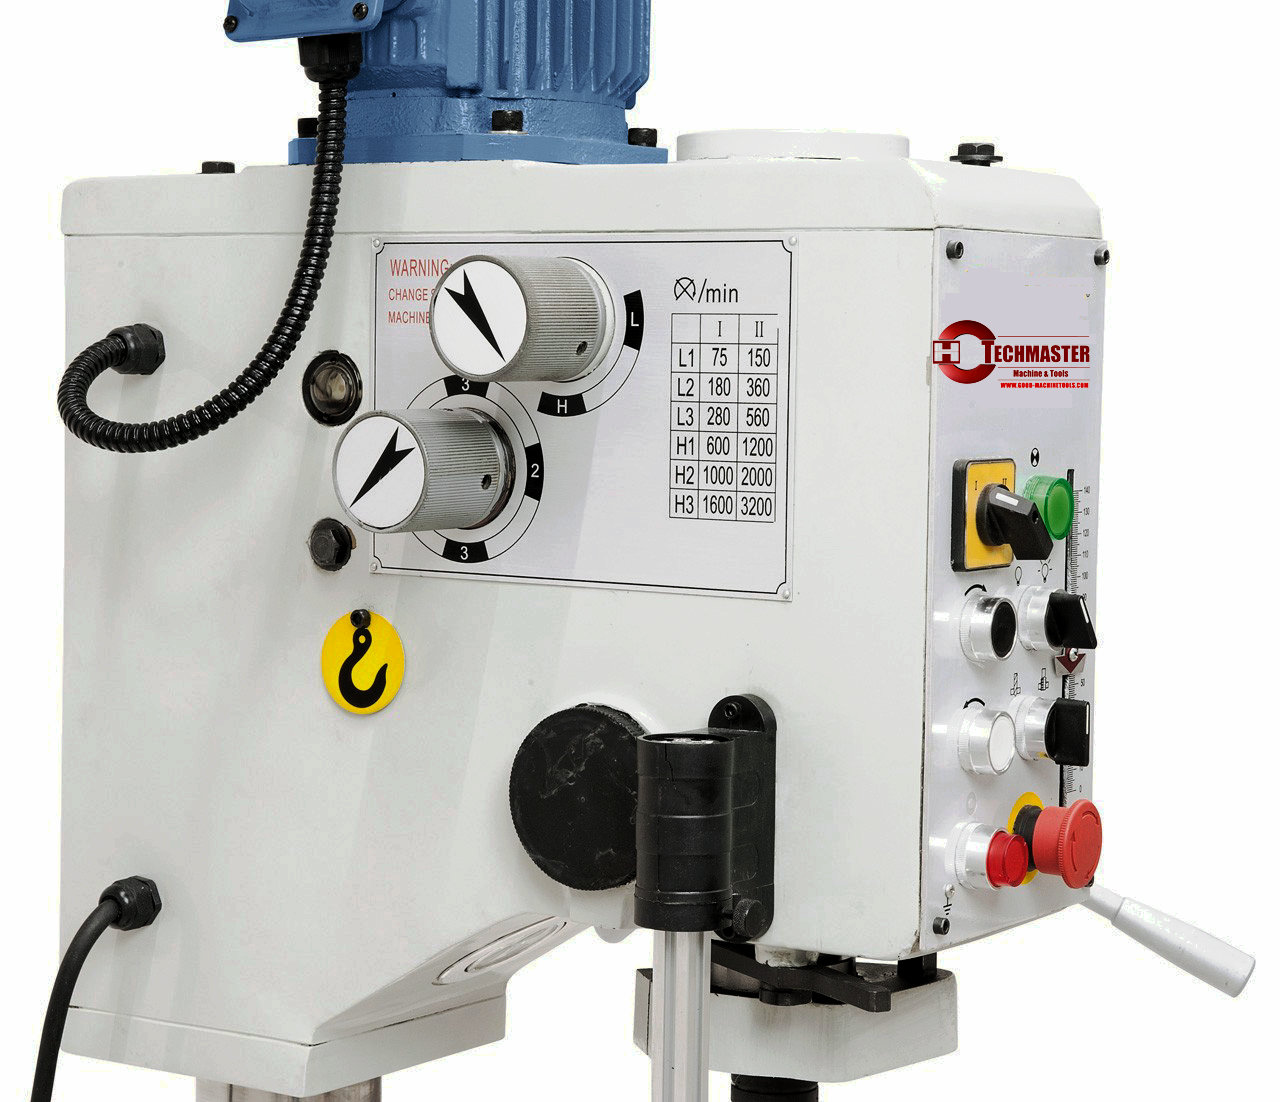 AUTO FEEDING GEARED HEAD DRILLING MACHINE EUROPE STYLE Z5025